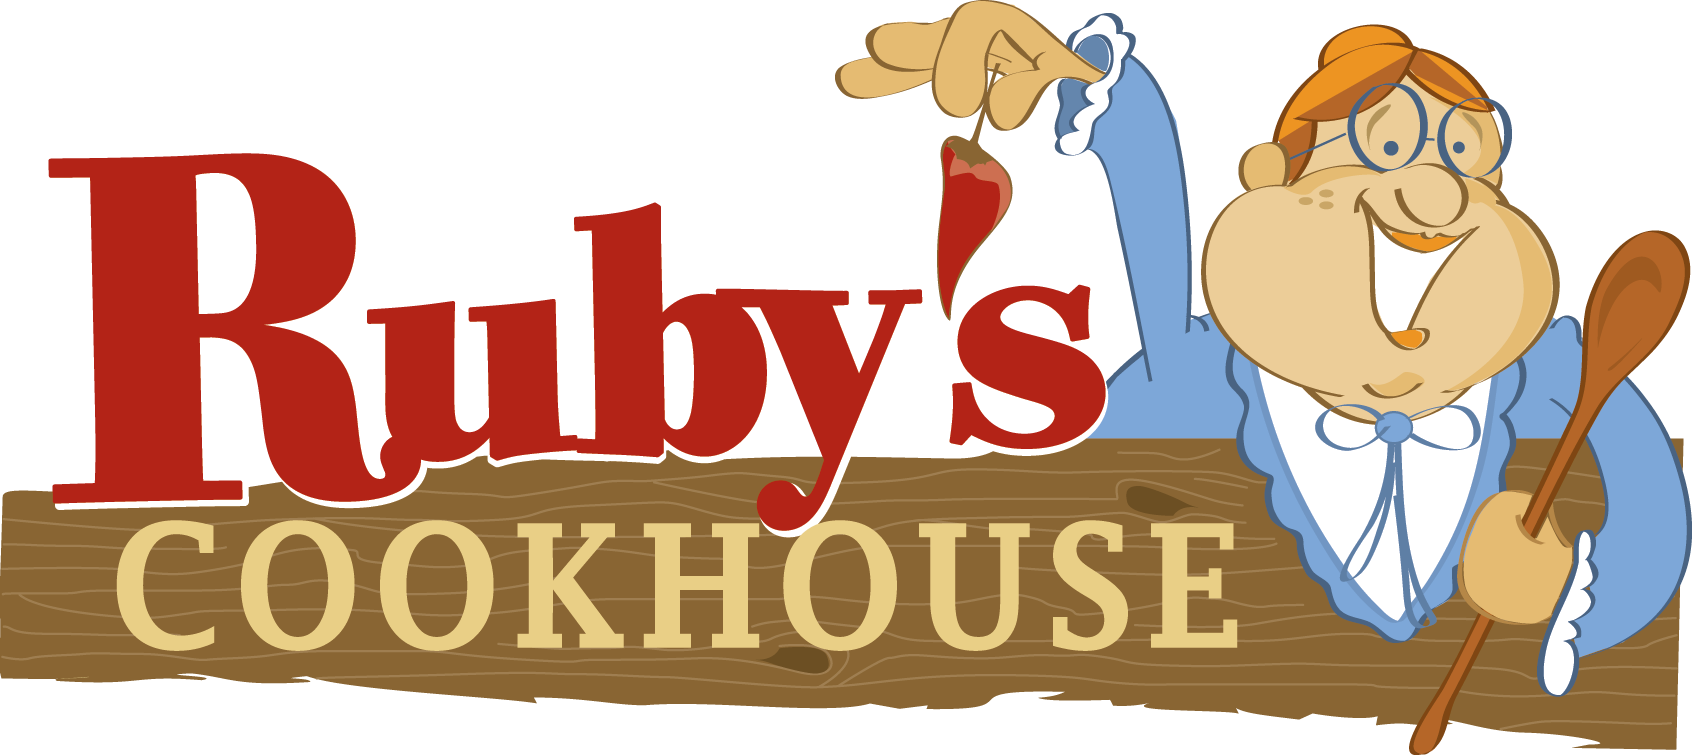 Ruby's Cookhouse